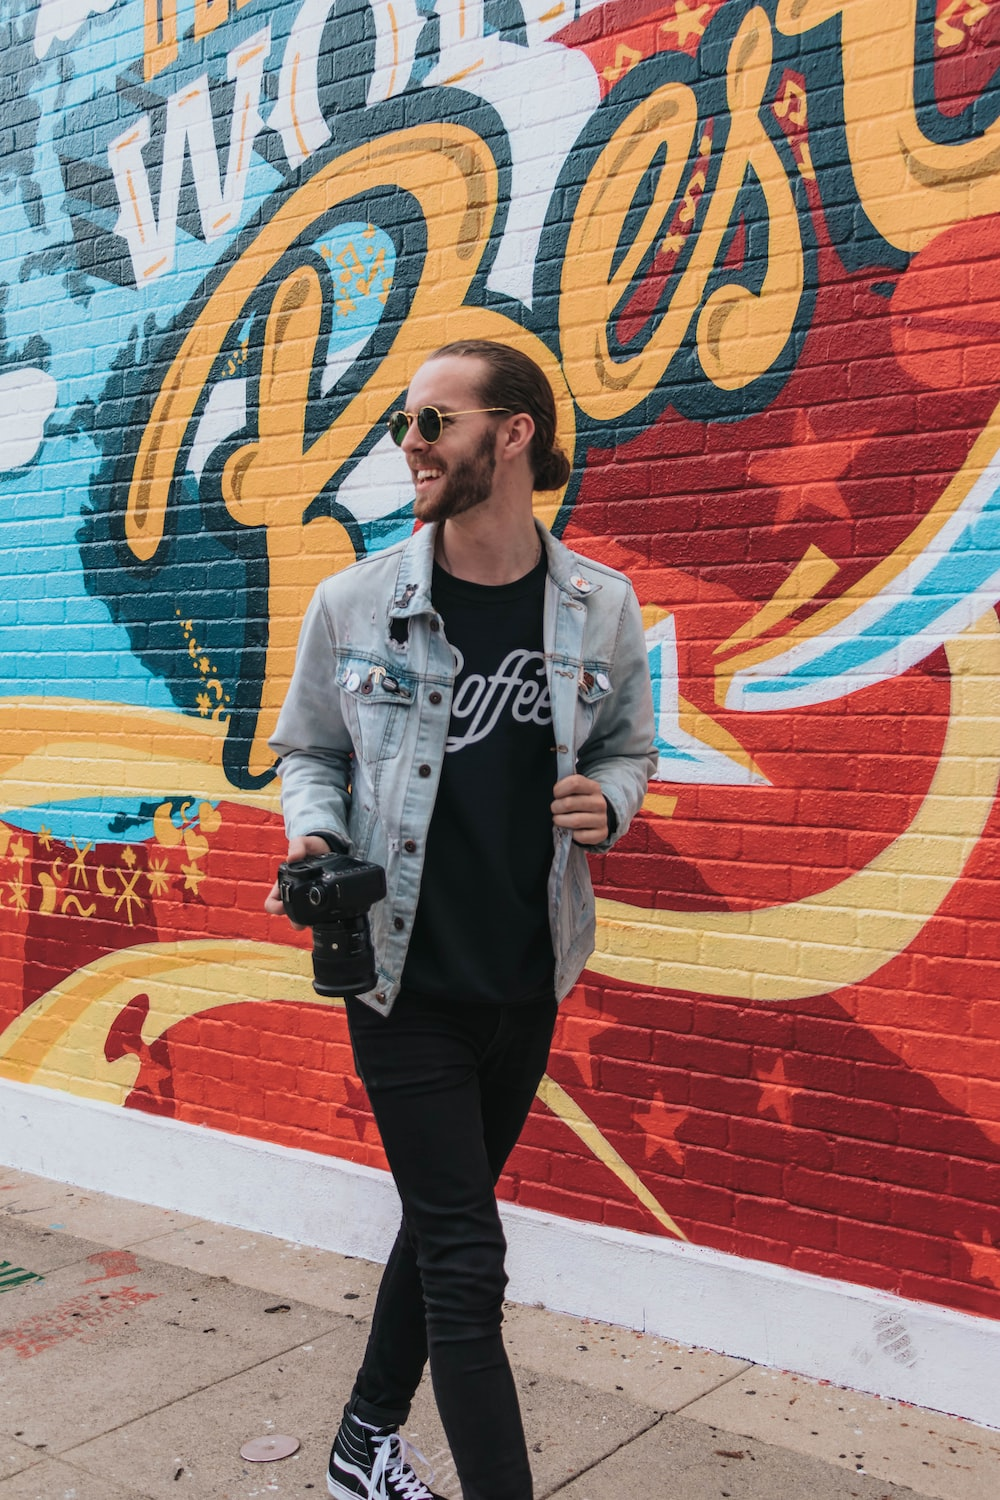 man holding DSLR camera standing on front of wall with graffiti